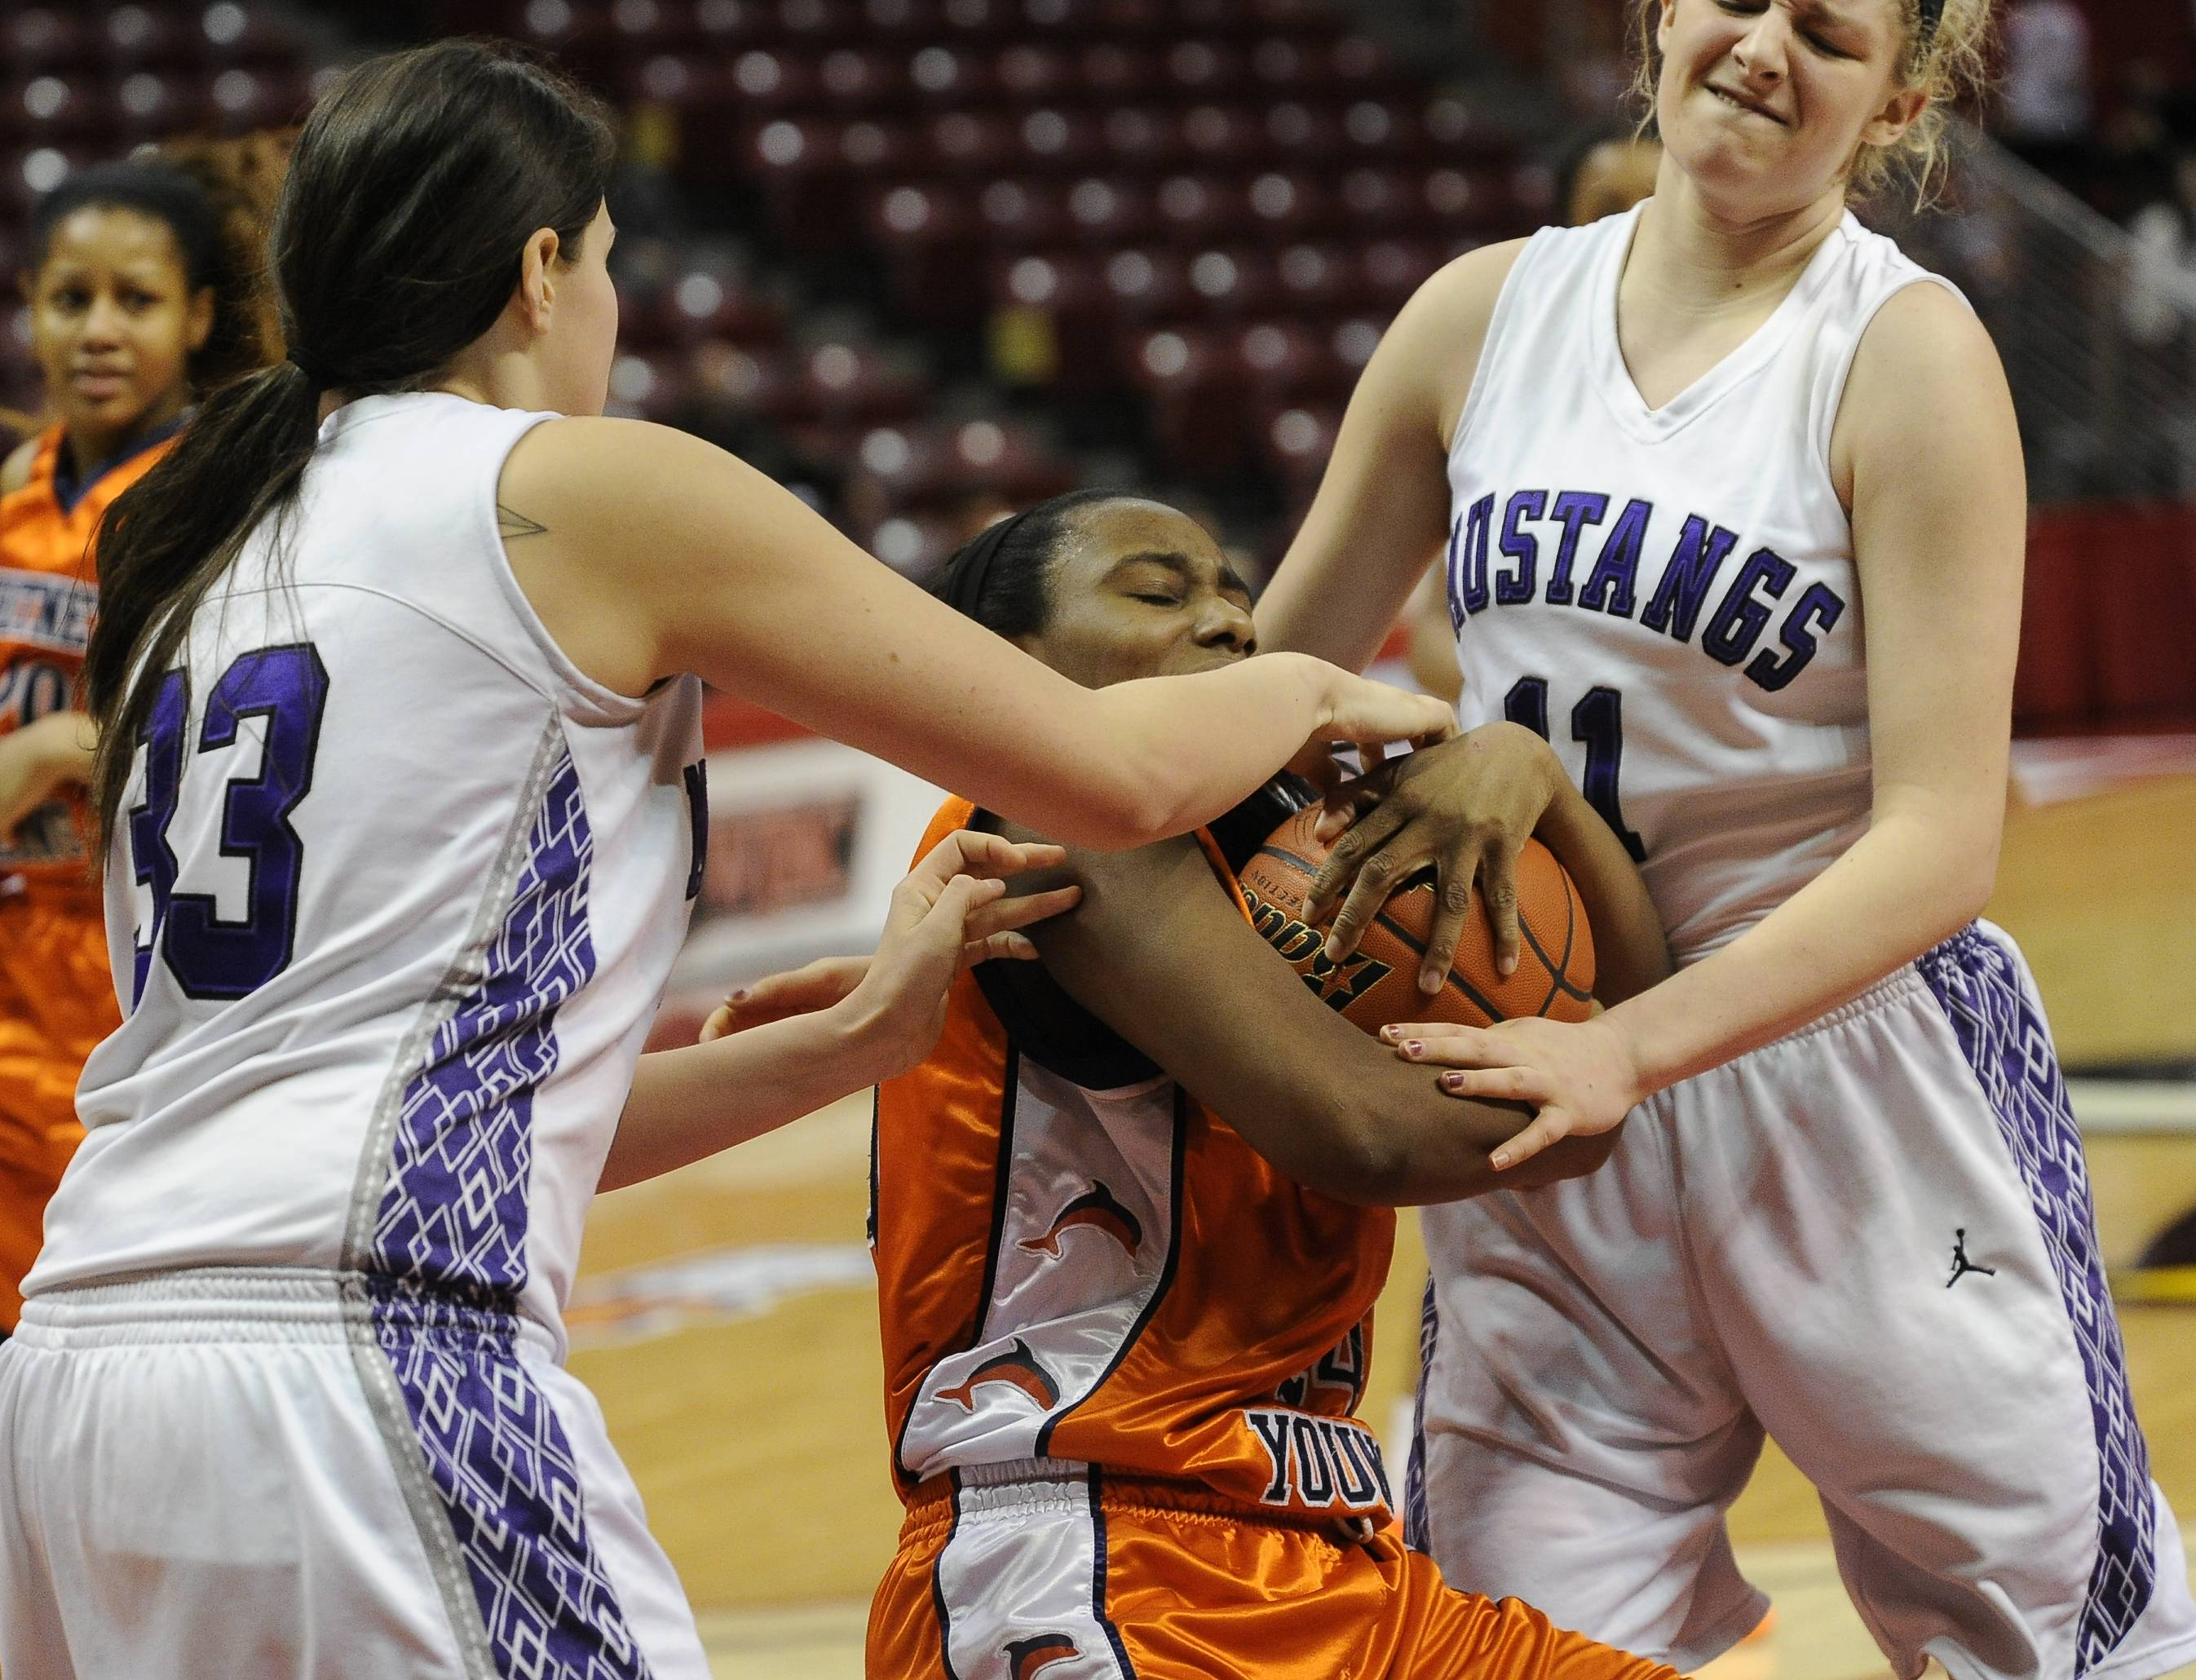 Images from the Class 4A state title girls basketball game Rolling Meadows vs Chicago (Whitney Young) at Redbird Arena in Normal on Saturday, March 8, 2014.